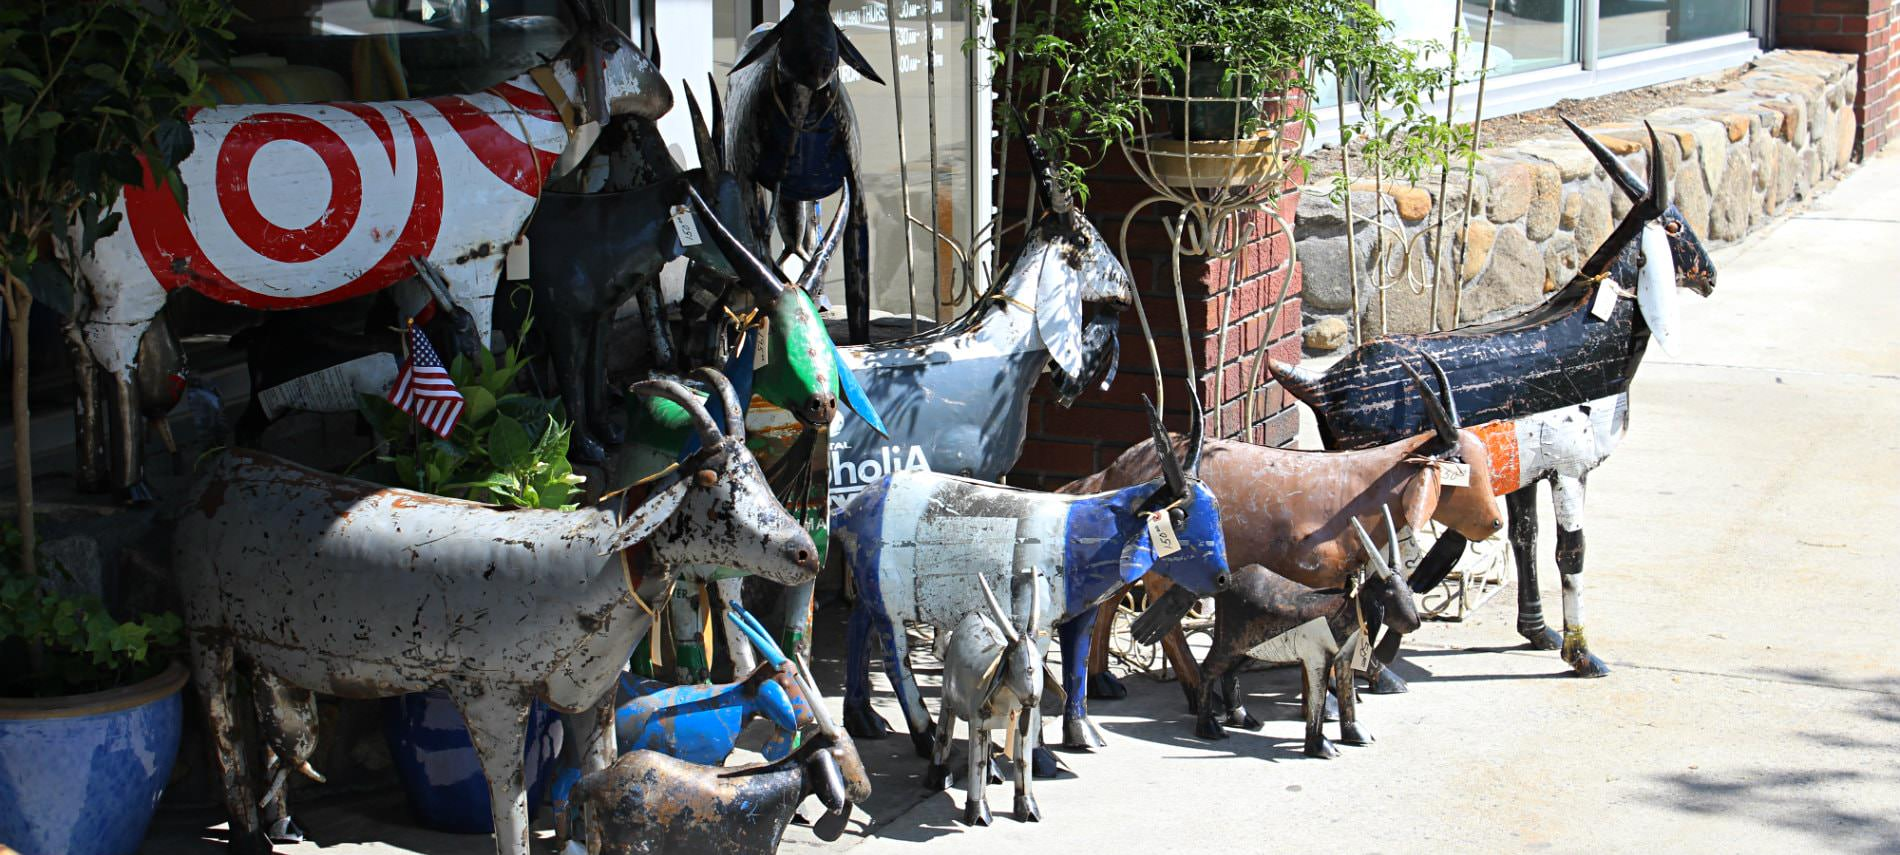 handcrafted metal goats in different colors outside a shop